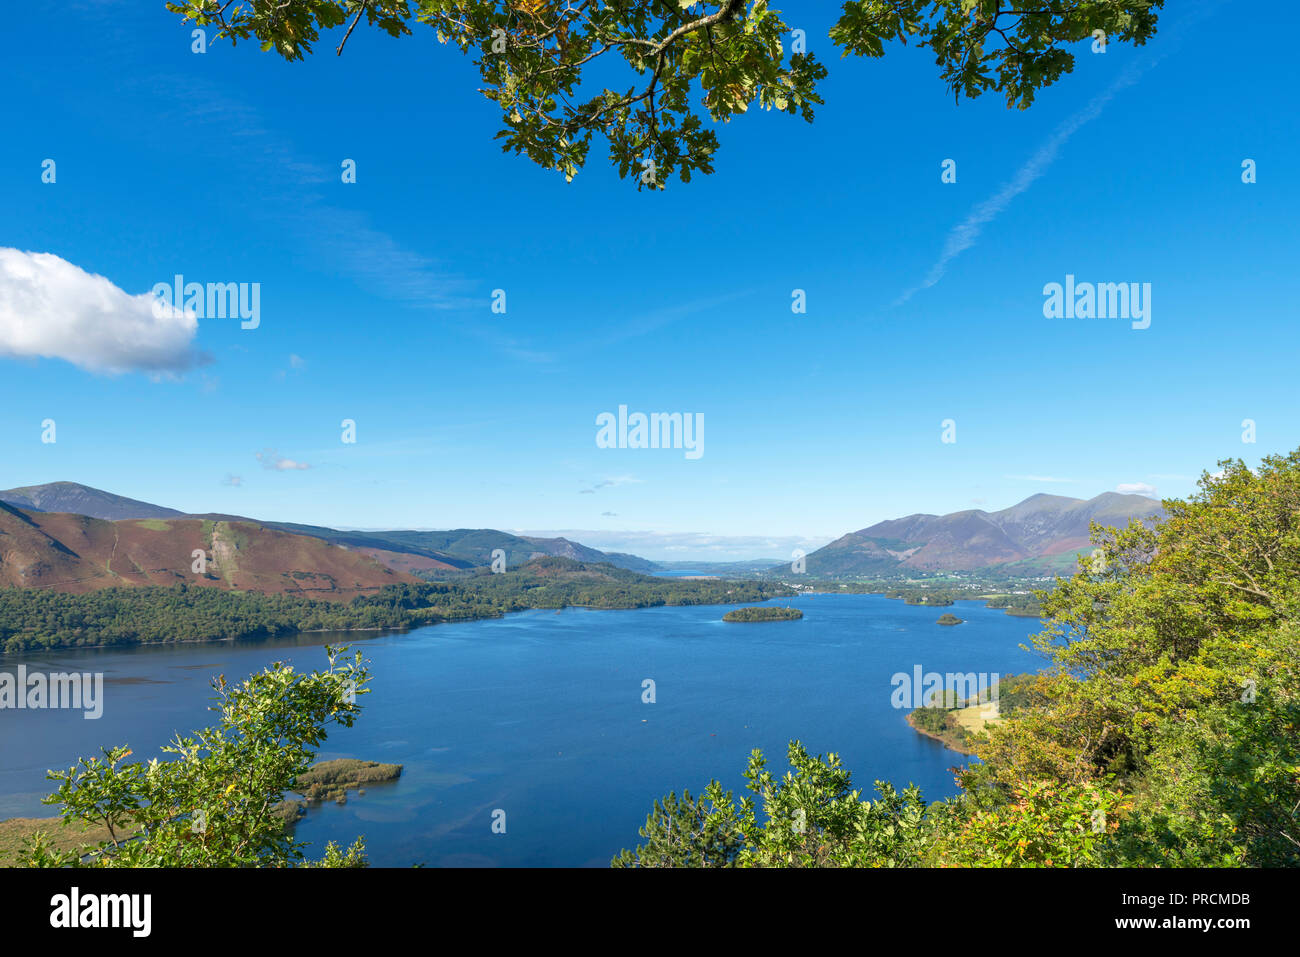 View over Derwentwater towards Skiddaw massif from Surprise View, Borrowdale, Lake District, Cumbria, UK - Stock Image